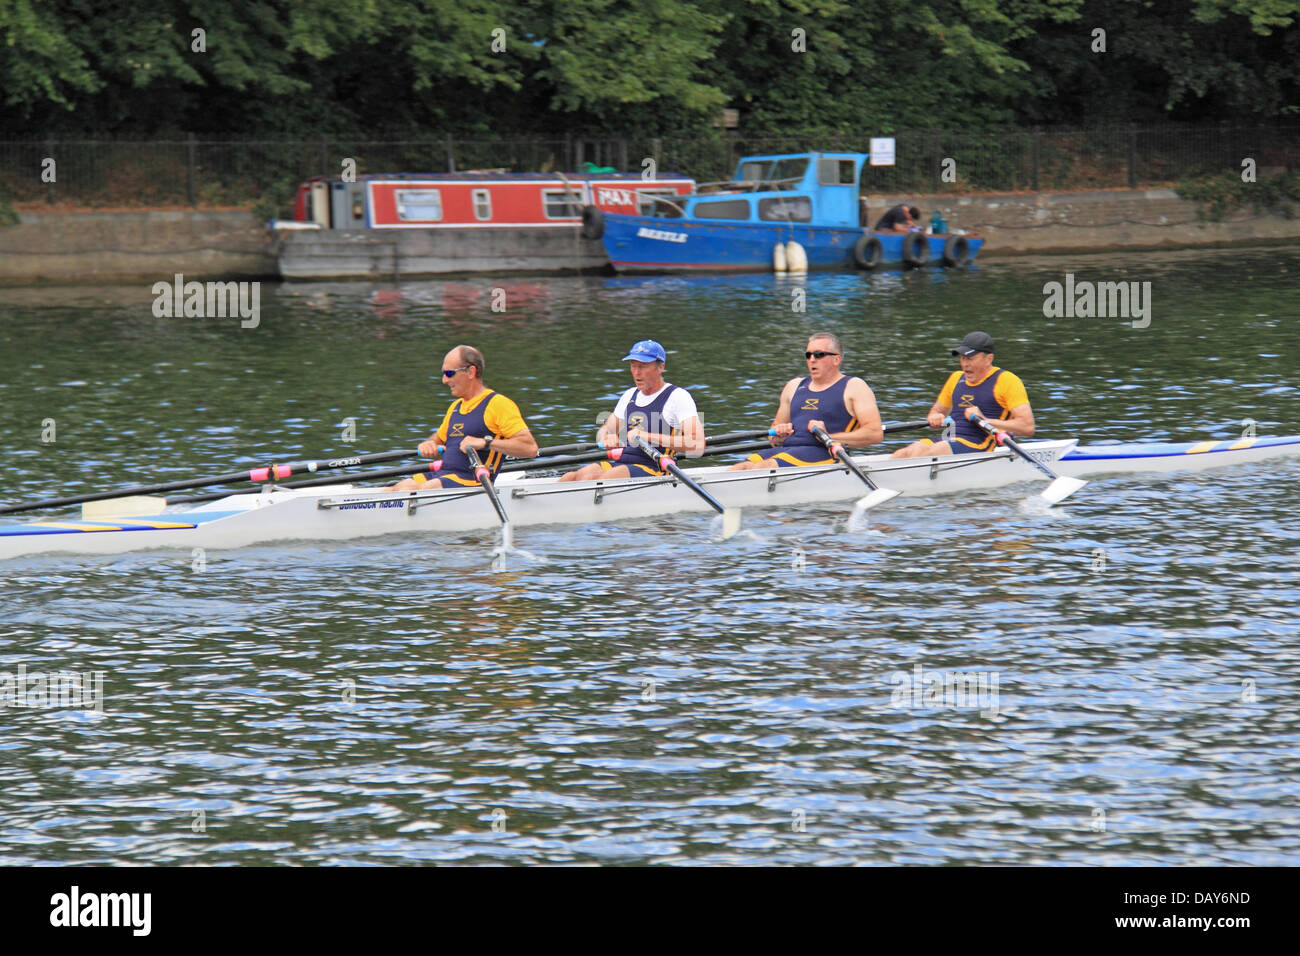 Uk amateur on rowing boat